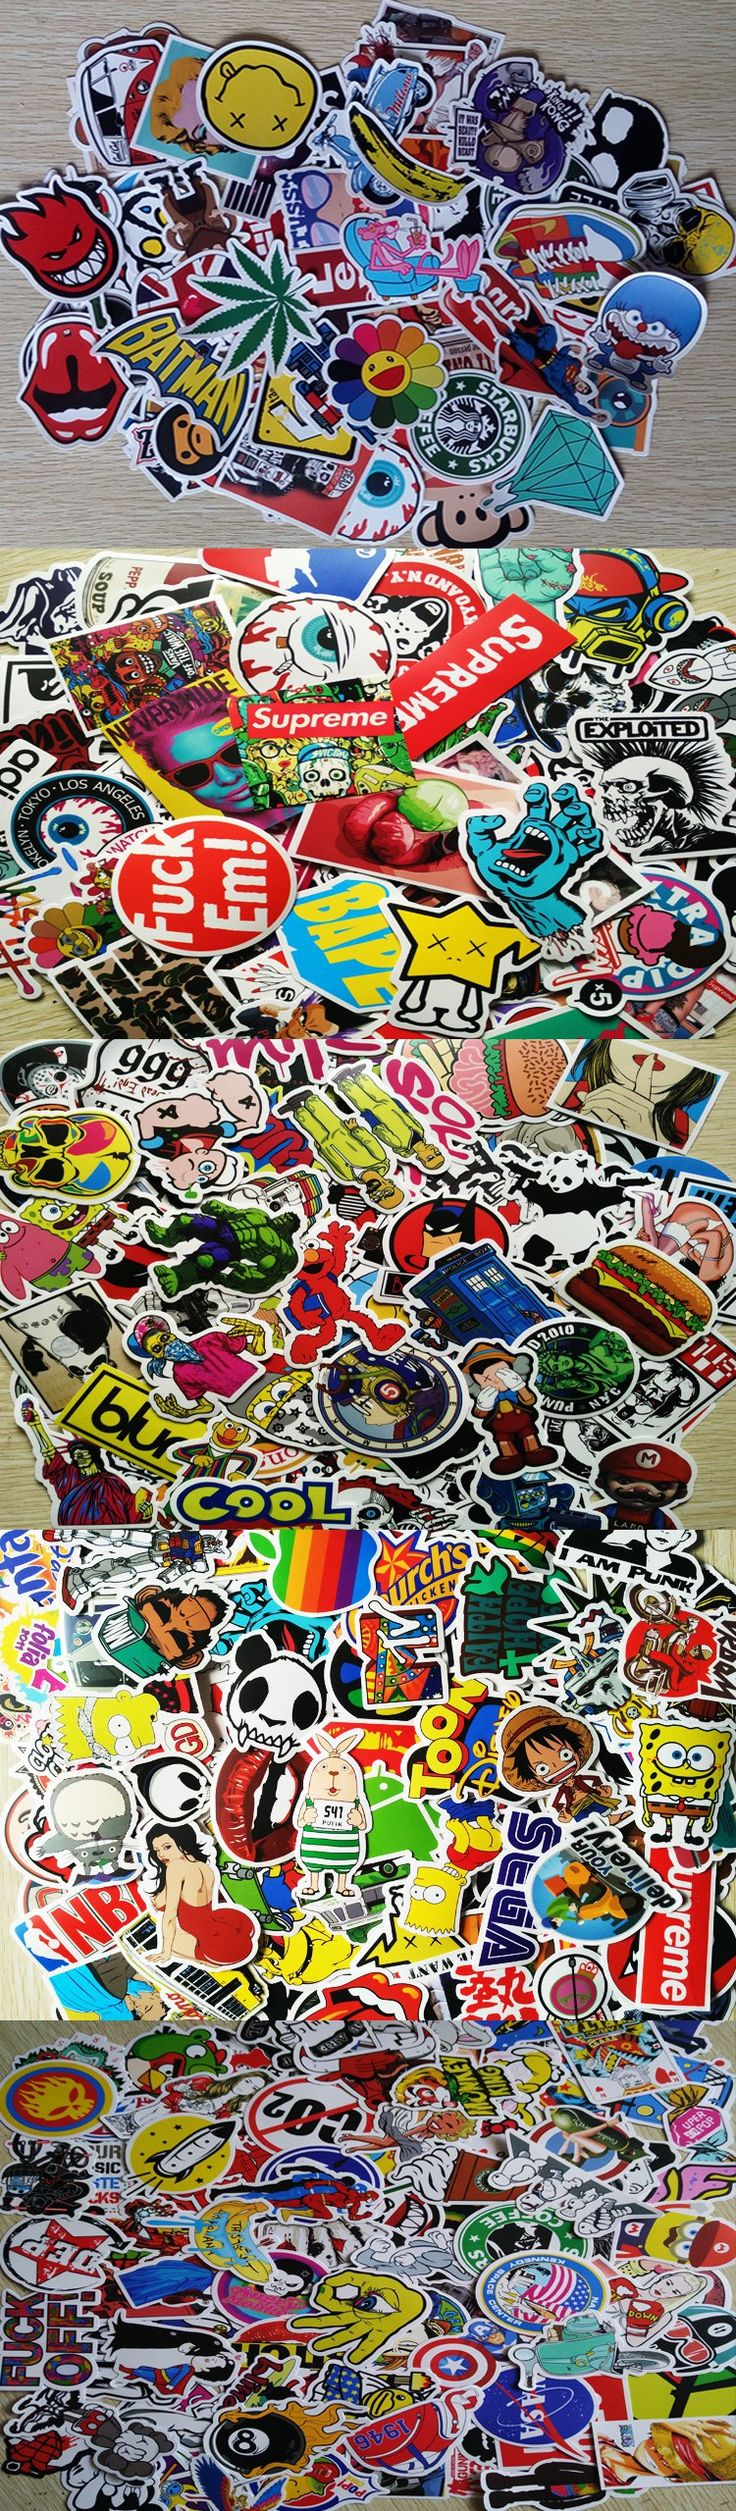 PCSDrop shipping Fashion cool DIY Stickers for Skateboard Laptop Luggage Snowboard Fridge Phone toy Styling home decor Stickers $1.6